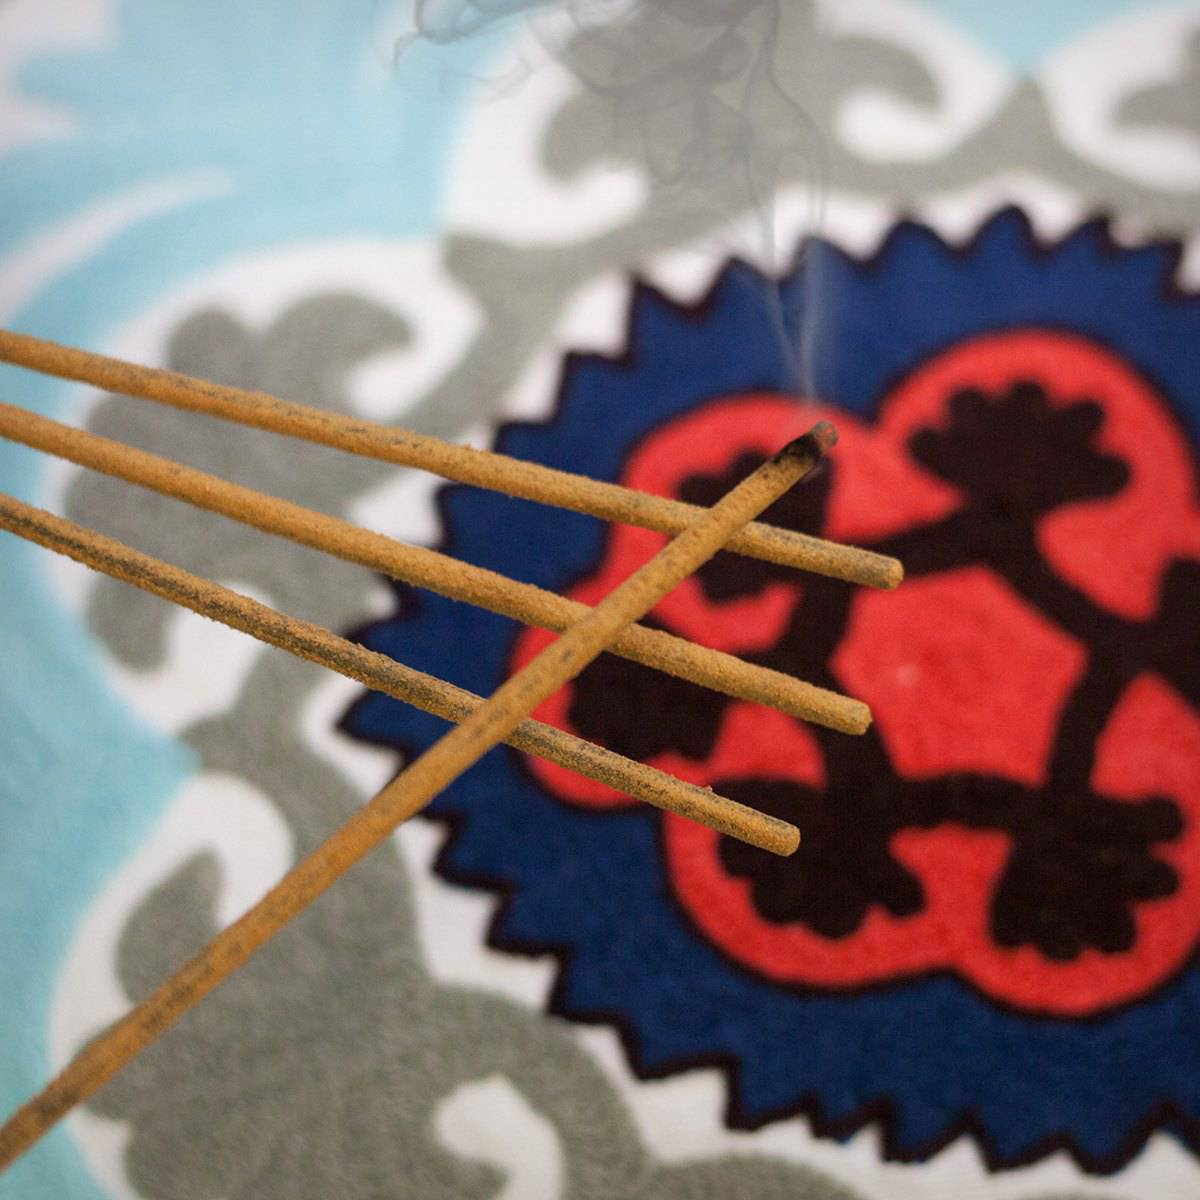 Sumerian Spiral Incense Holder with Nag Champa Incense Only 1_13 Secondary